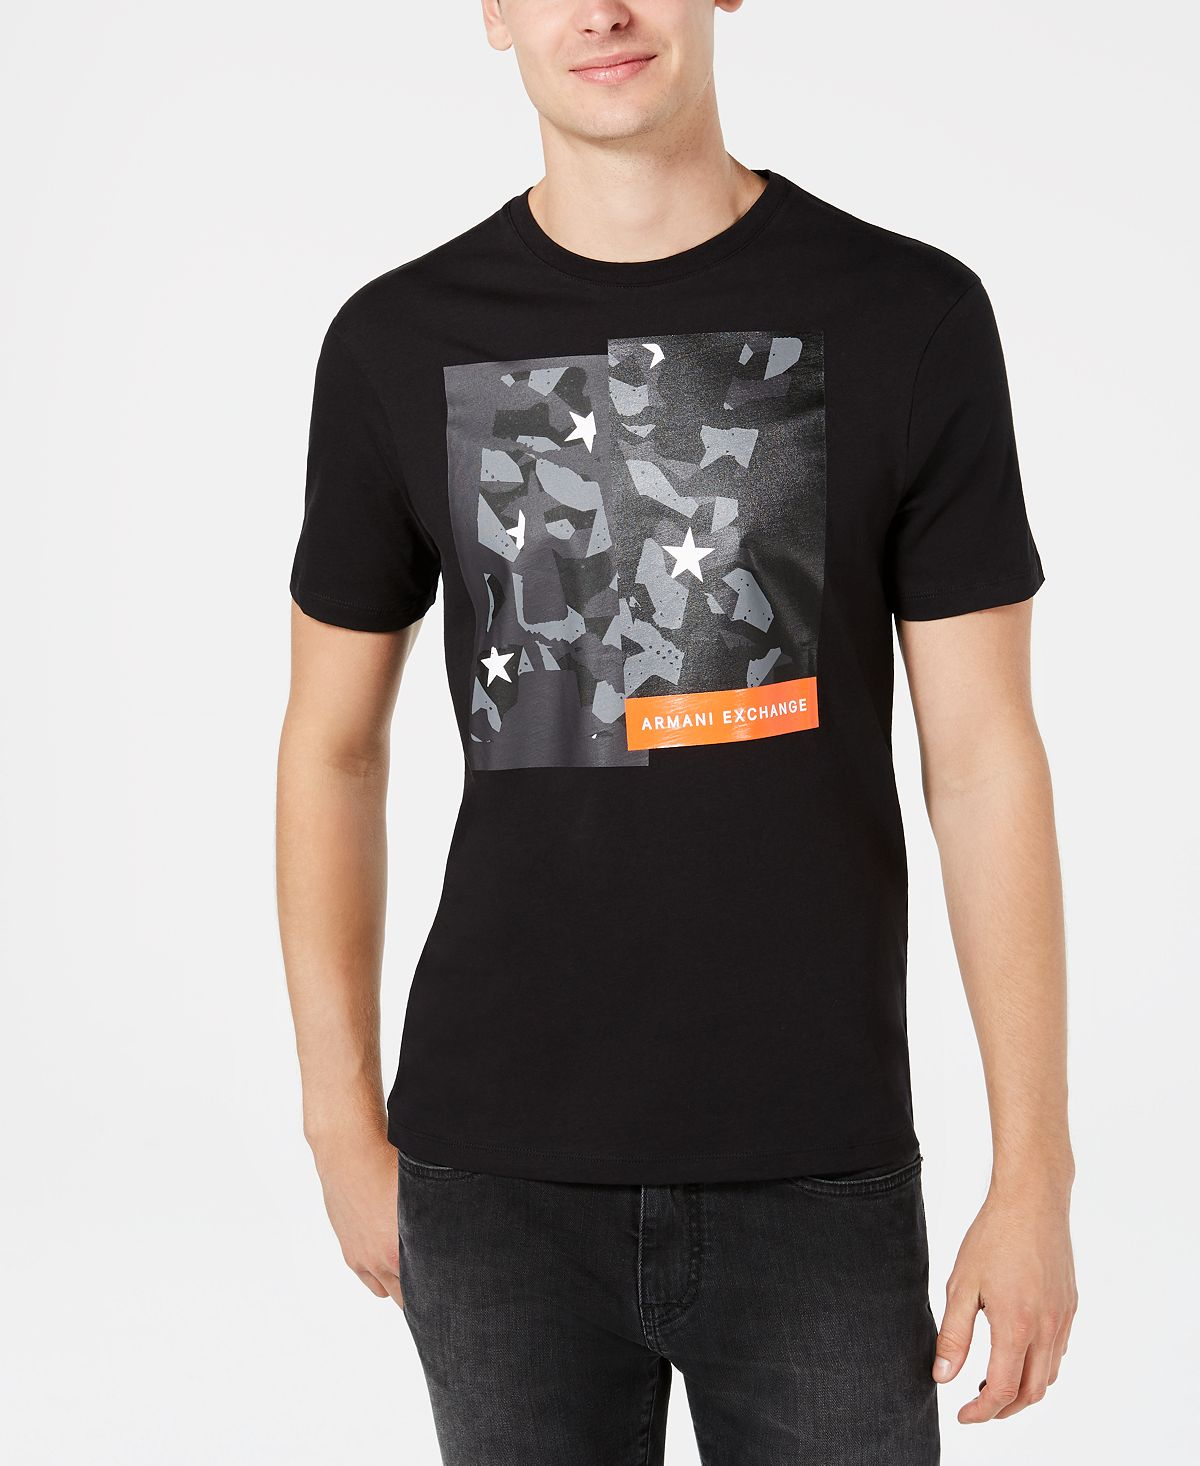 A|x Armani Exchange Camo Block Logo Graphic T-shirt